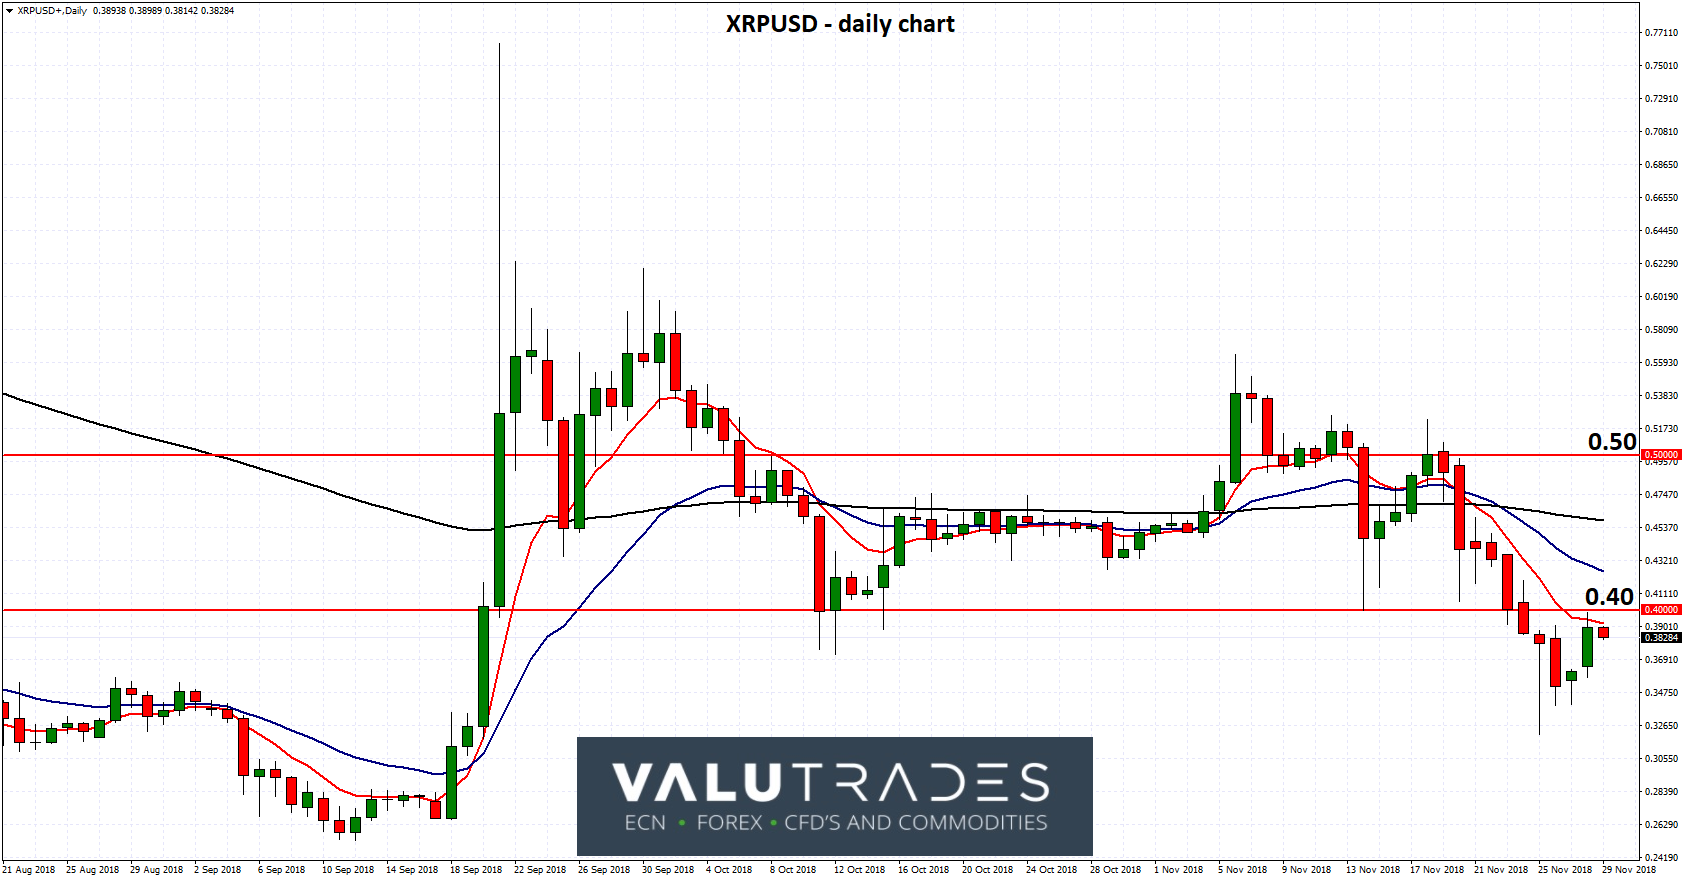 XRPUSD - Rallies to Key 0.40 Level as Doubts Linger